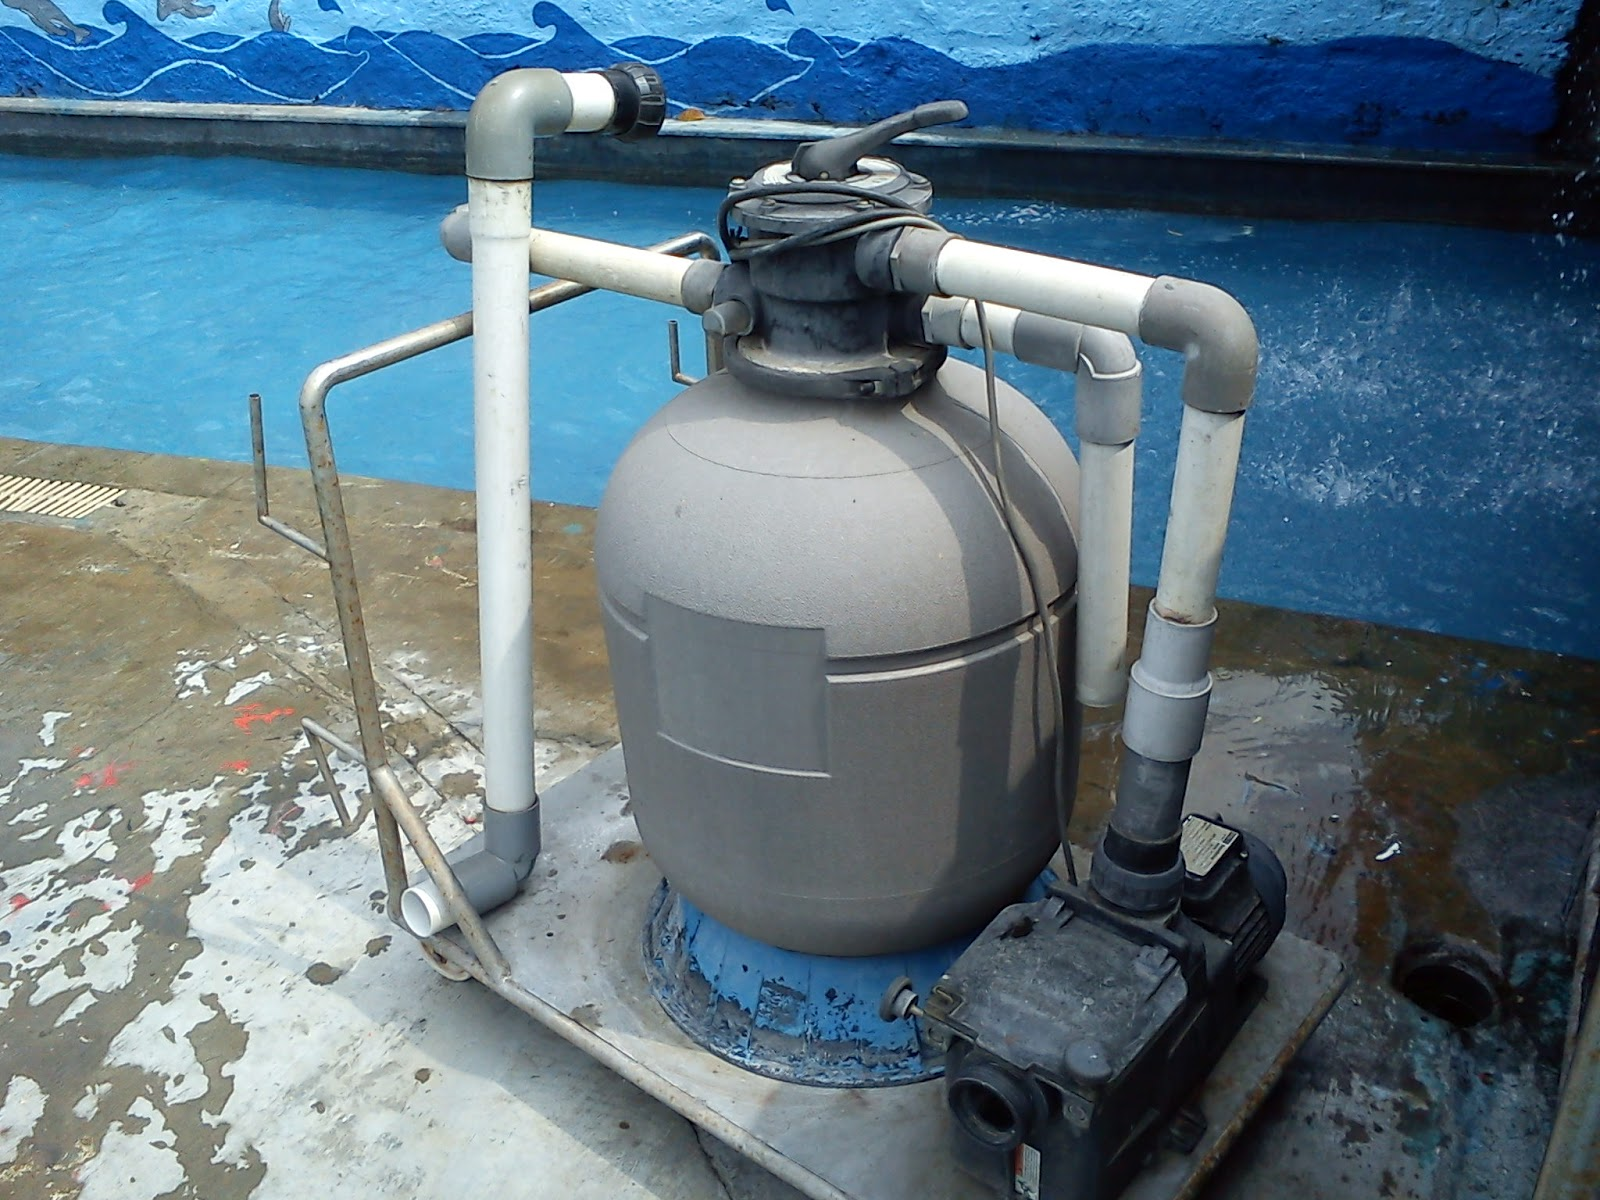 Hayward pool sand filter owners manual five posting - Sandfilterpumpe fur pool ...